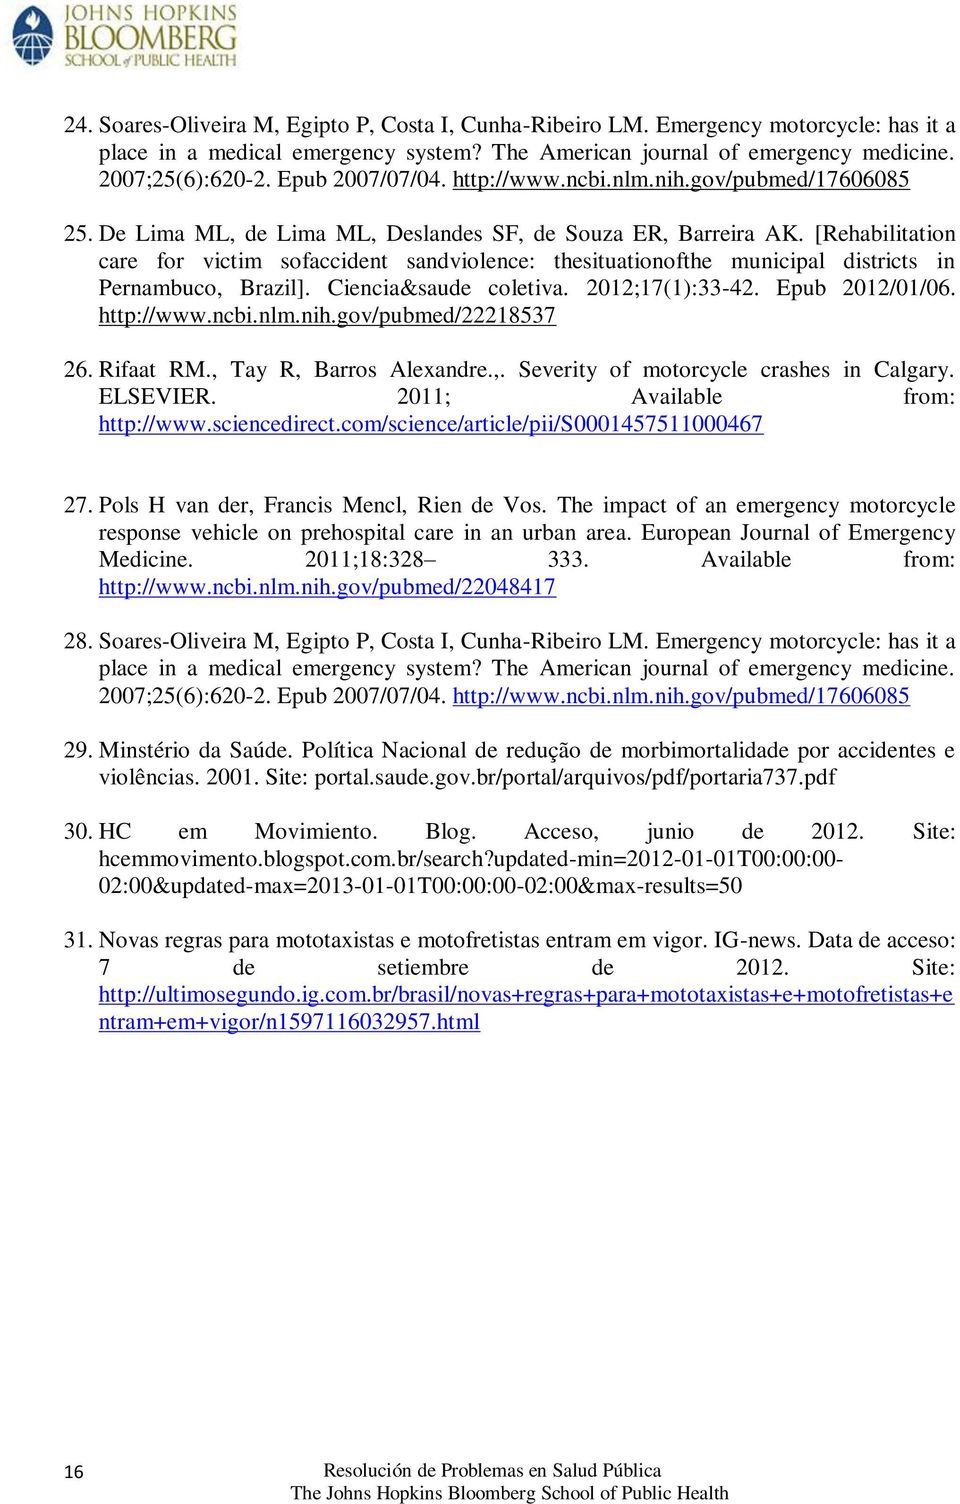 [Rehabilitation care for victim sofaccident sandviolence: thesituationofthe municipal districts in Pernambuco, Brazil]. Ciencia&saude coletiva. 2012;17(1):33-42. Epub 2012/01/06. http://www.ncbi.nlm.